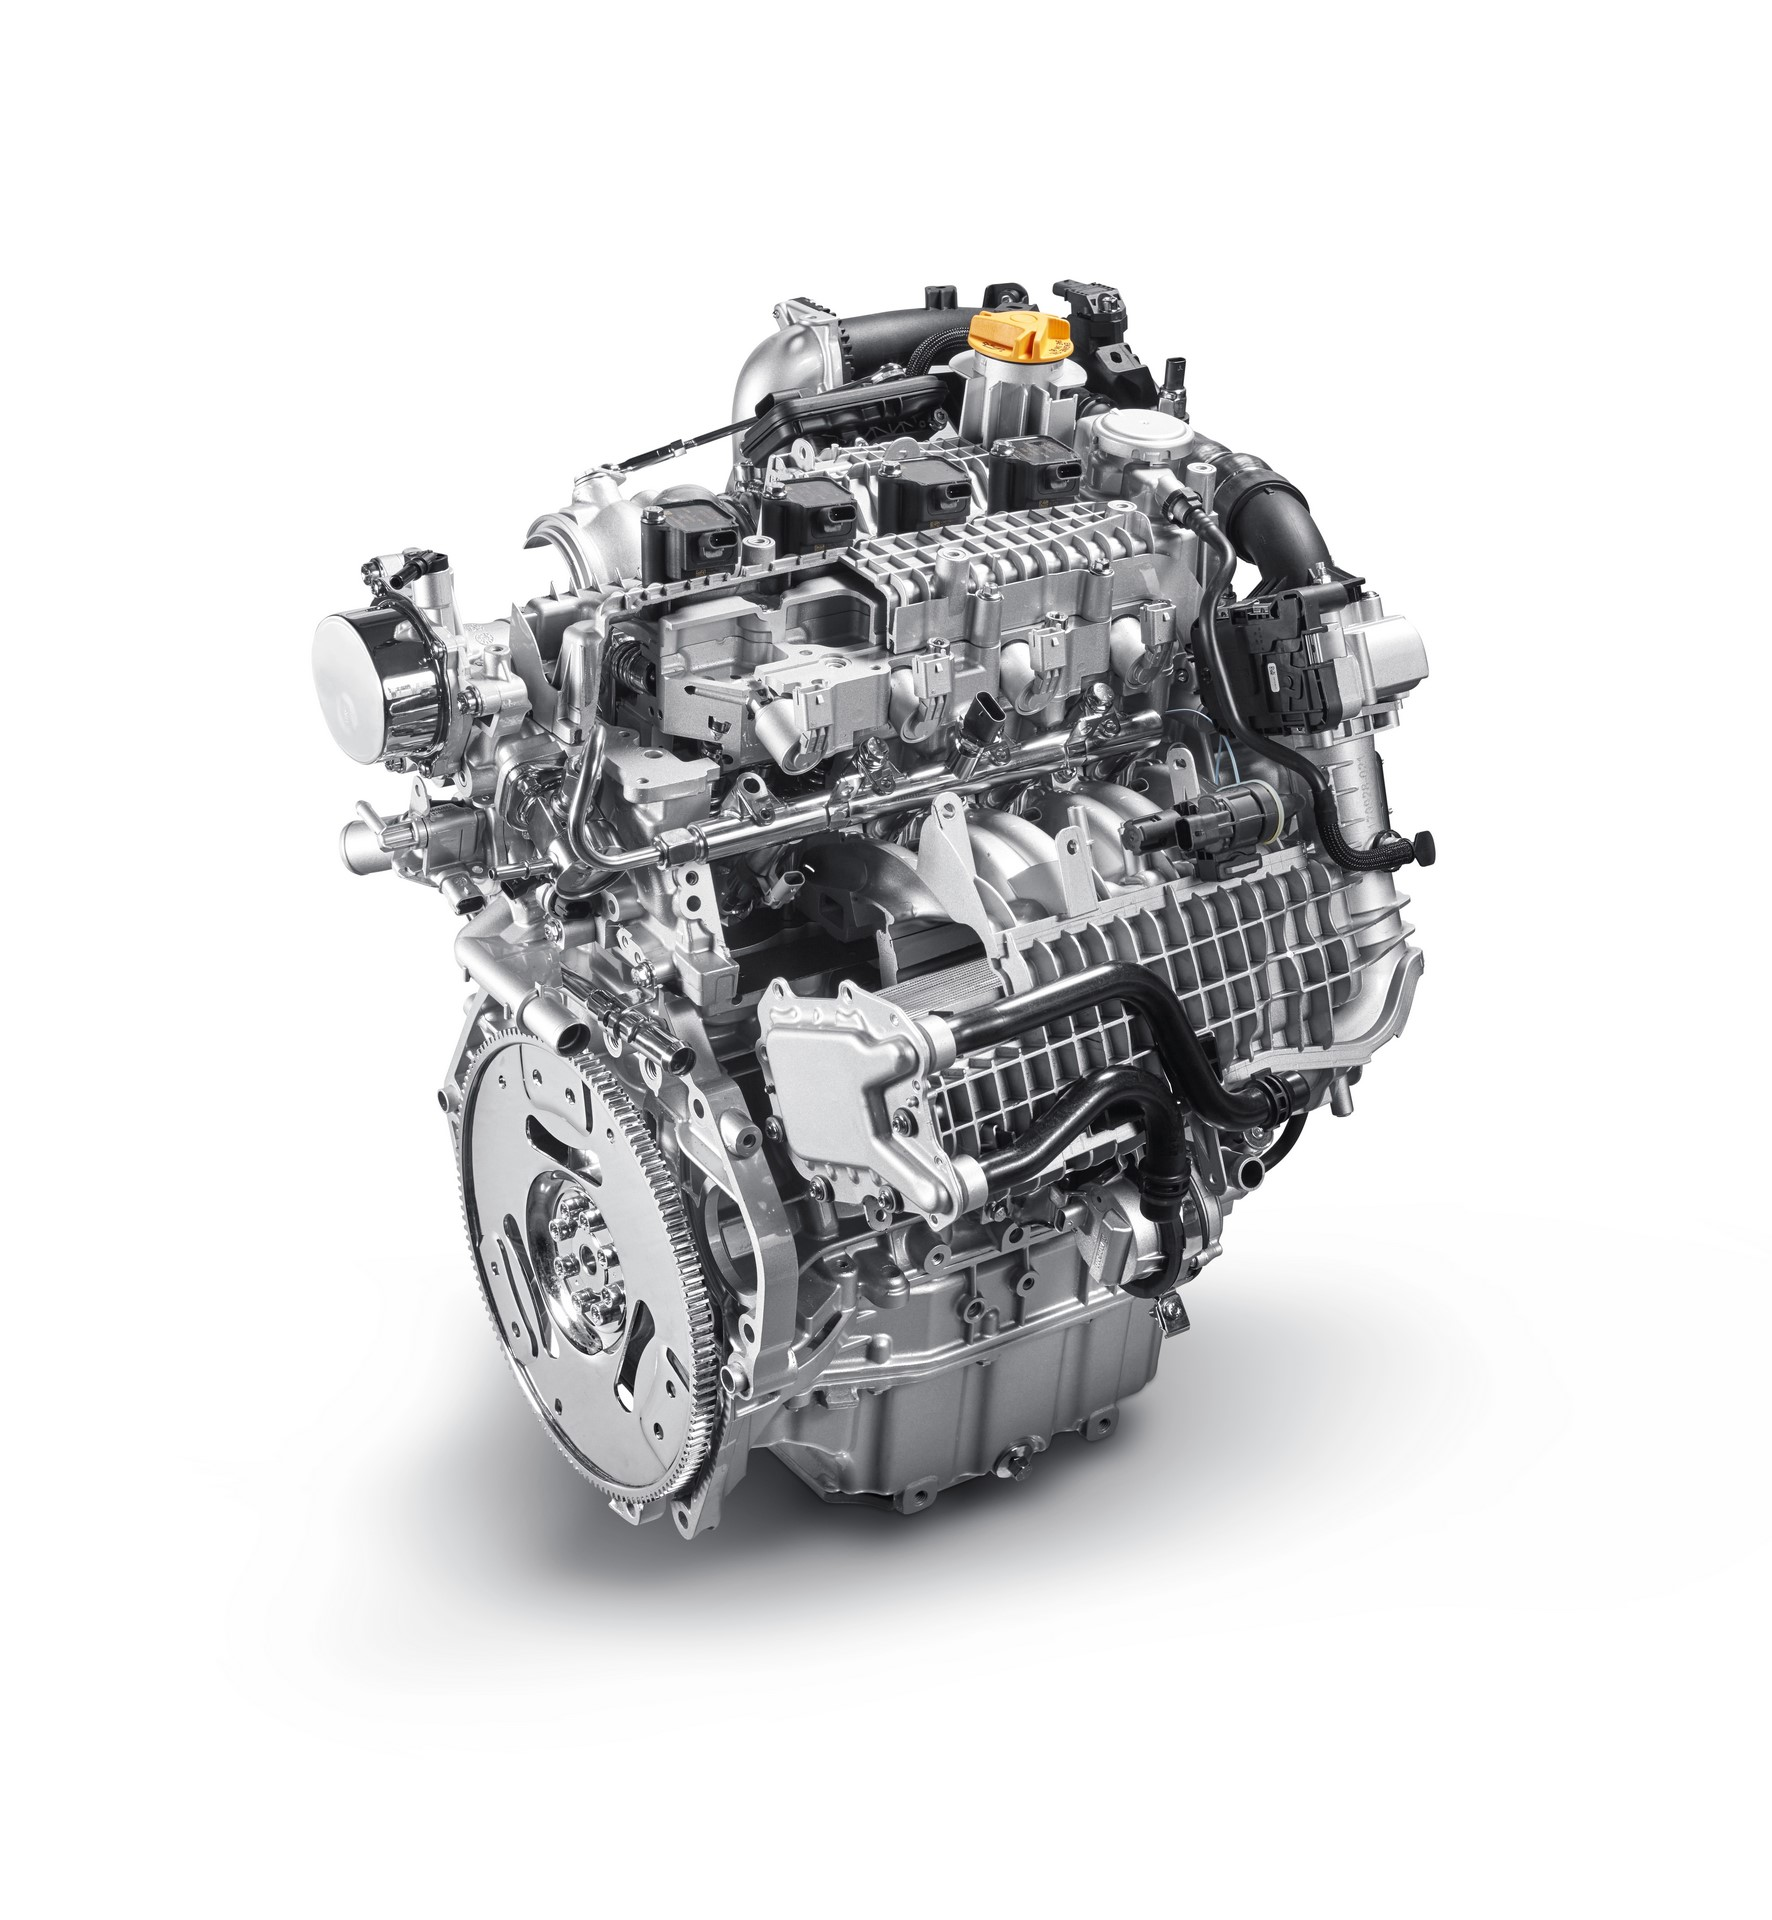 New-13L-Turbo-4-cylinder-150HP_13